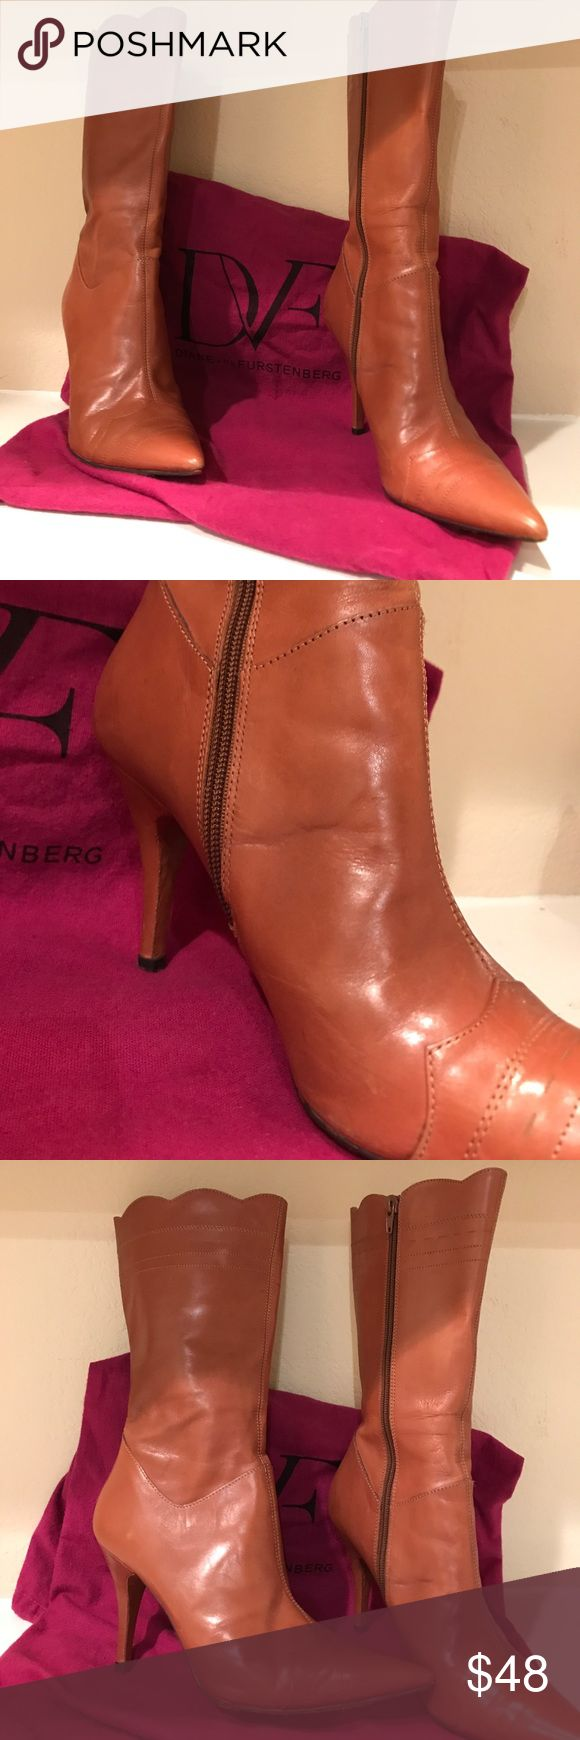 Charles David boots Lightly worn excellent shape Charles David boots  3 1/2 inch heels hight from bottom to top 13 1/2 inches Charles by Charles David Shoes Heeled Boots